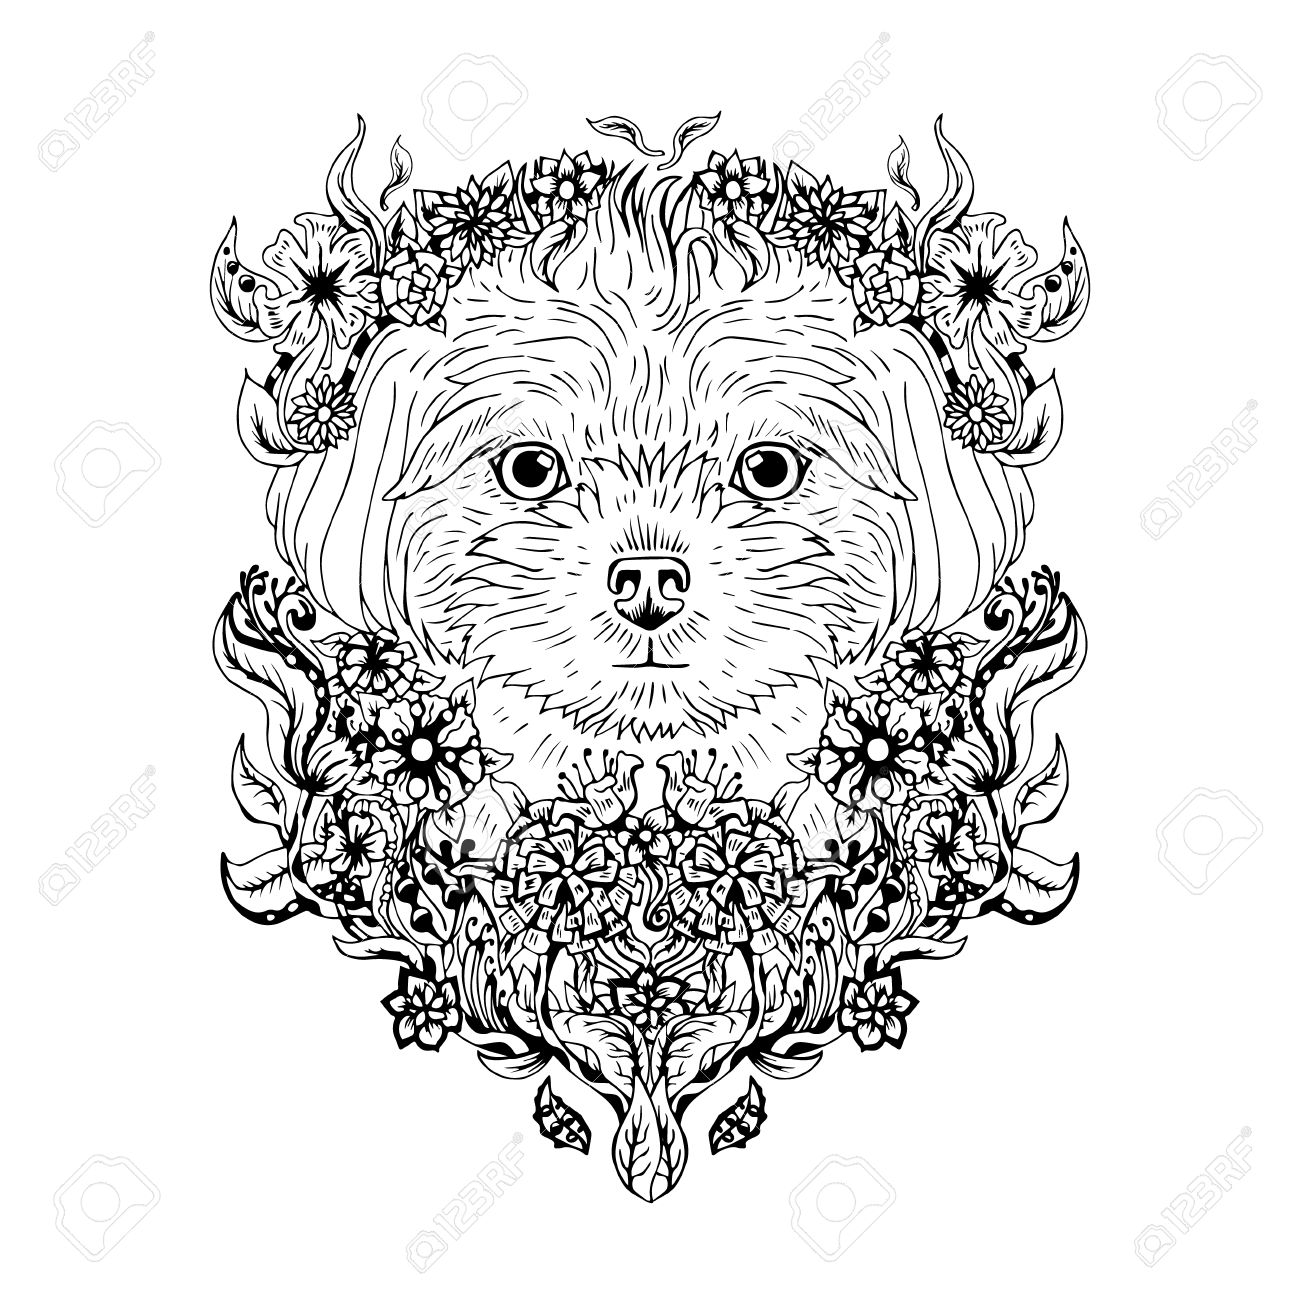 1300x1300 Black And White Animal Dog Head, Abstract Art, Tattoo, Doodle